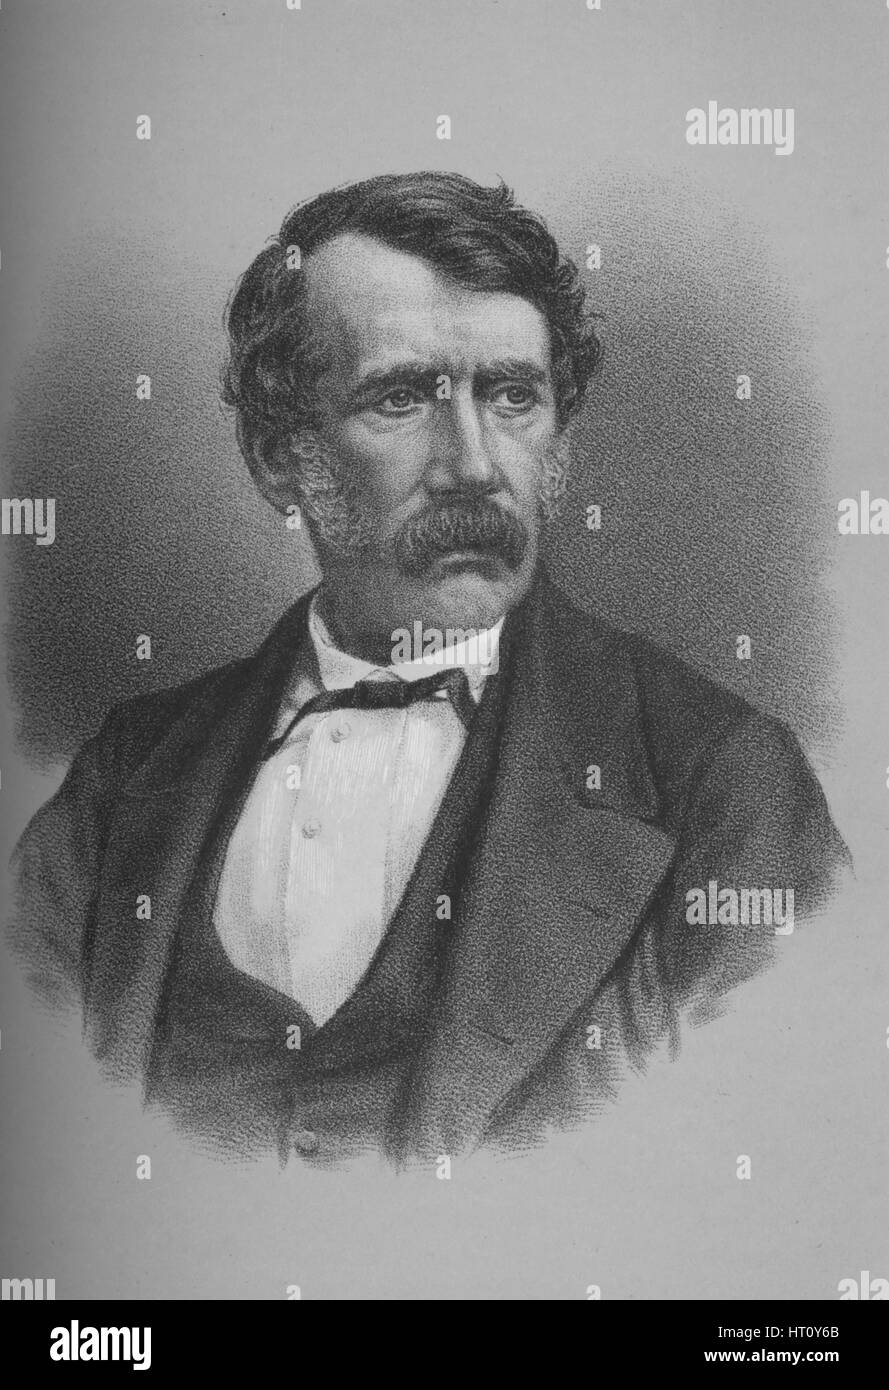 David Livingstone, Scottish missionary and African explorer, 1860s (1883). Artist: Unknown. - Stock Image